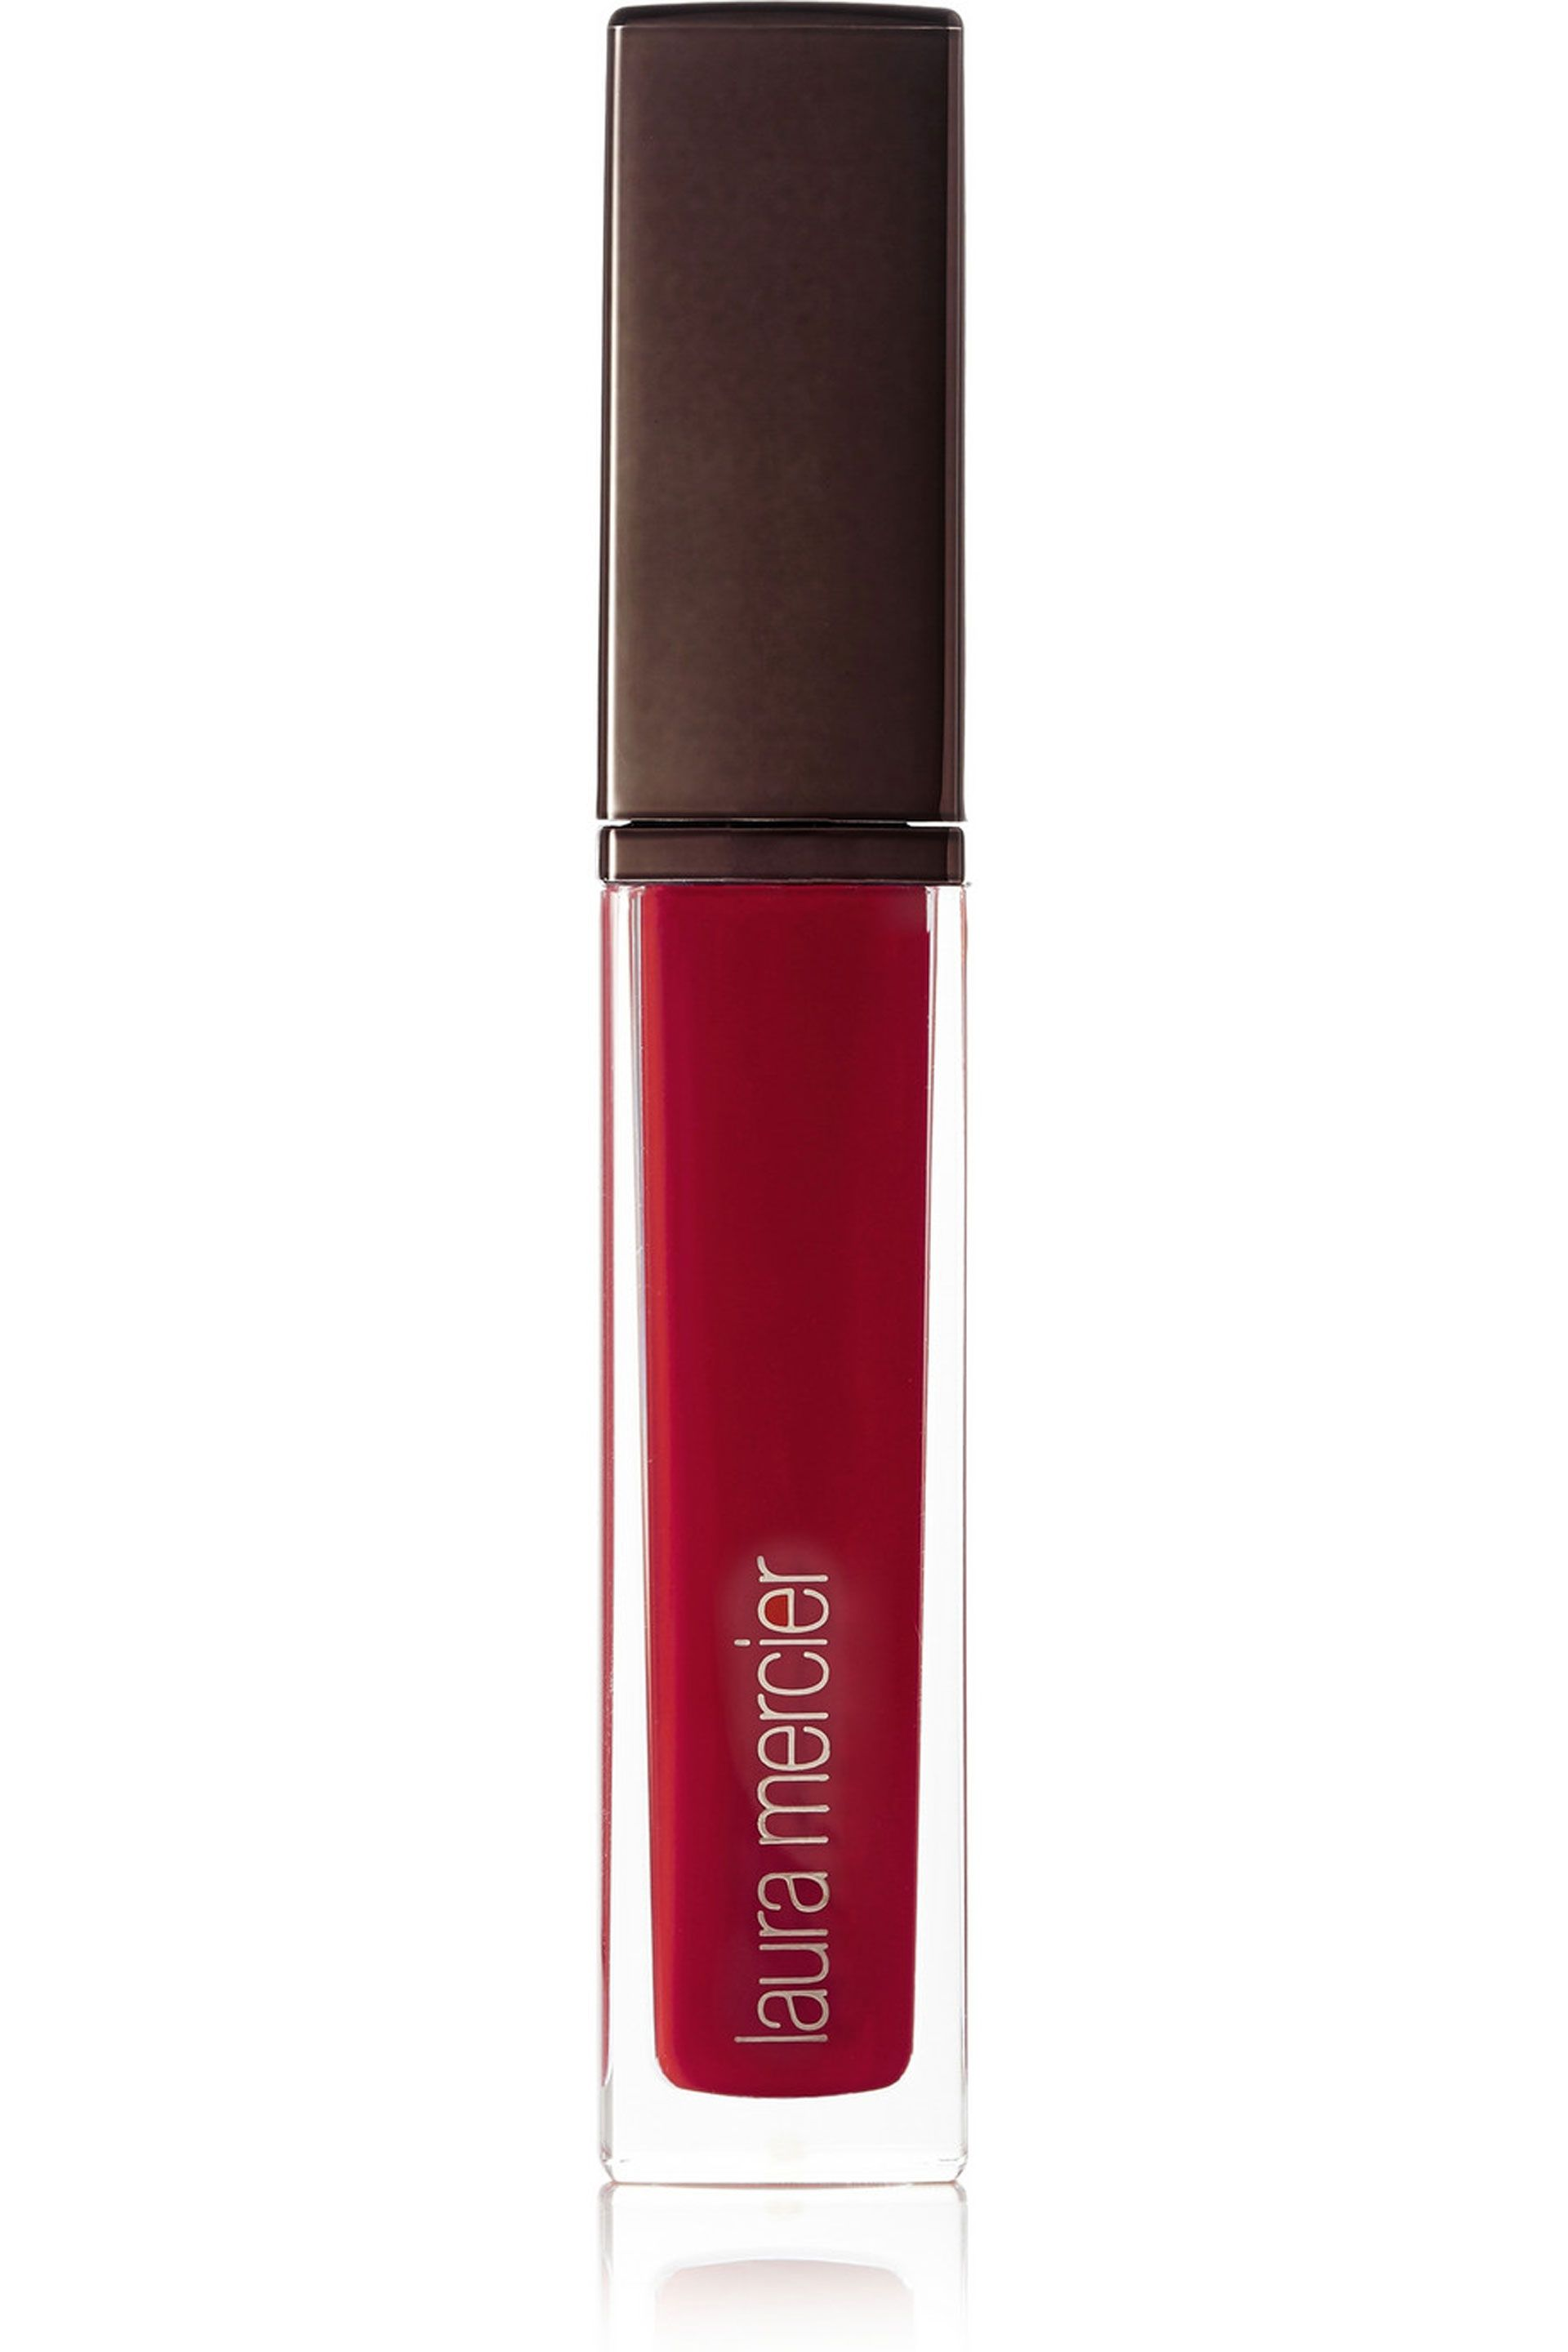 10 Things You Should Know About Liquid Lipstick